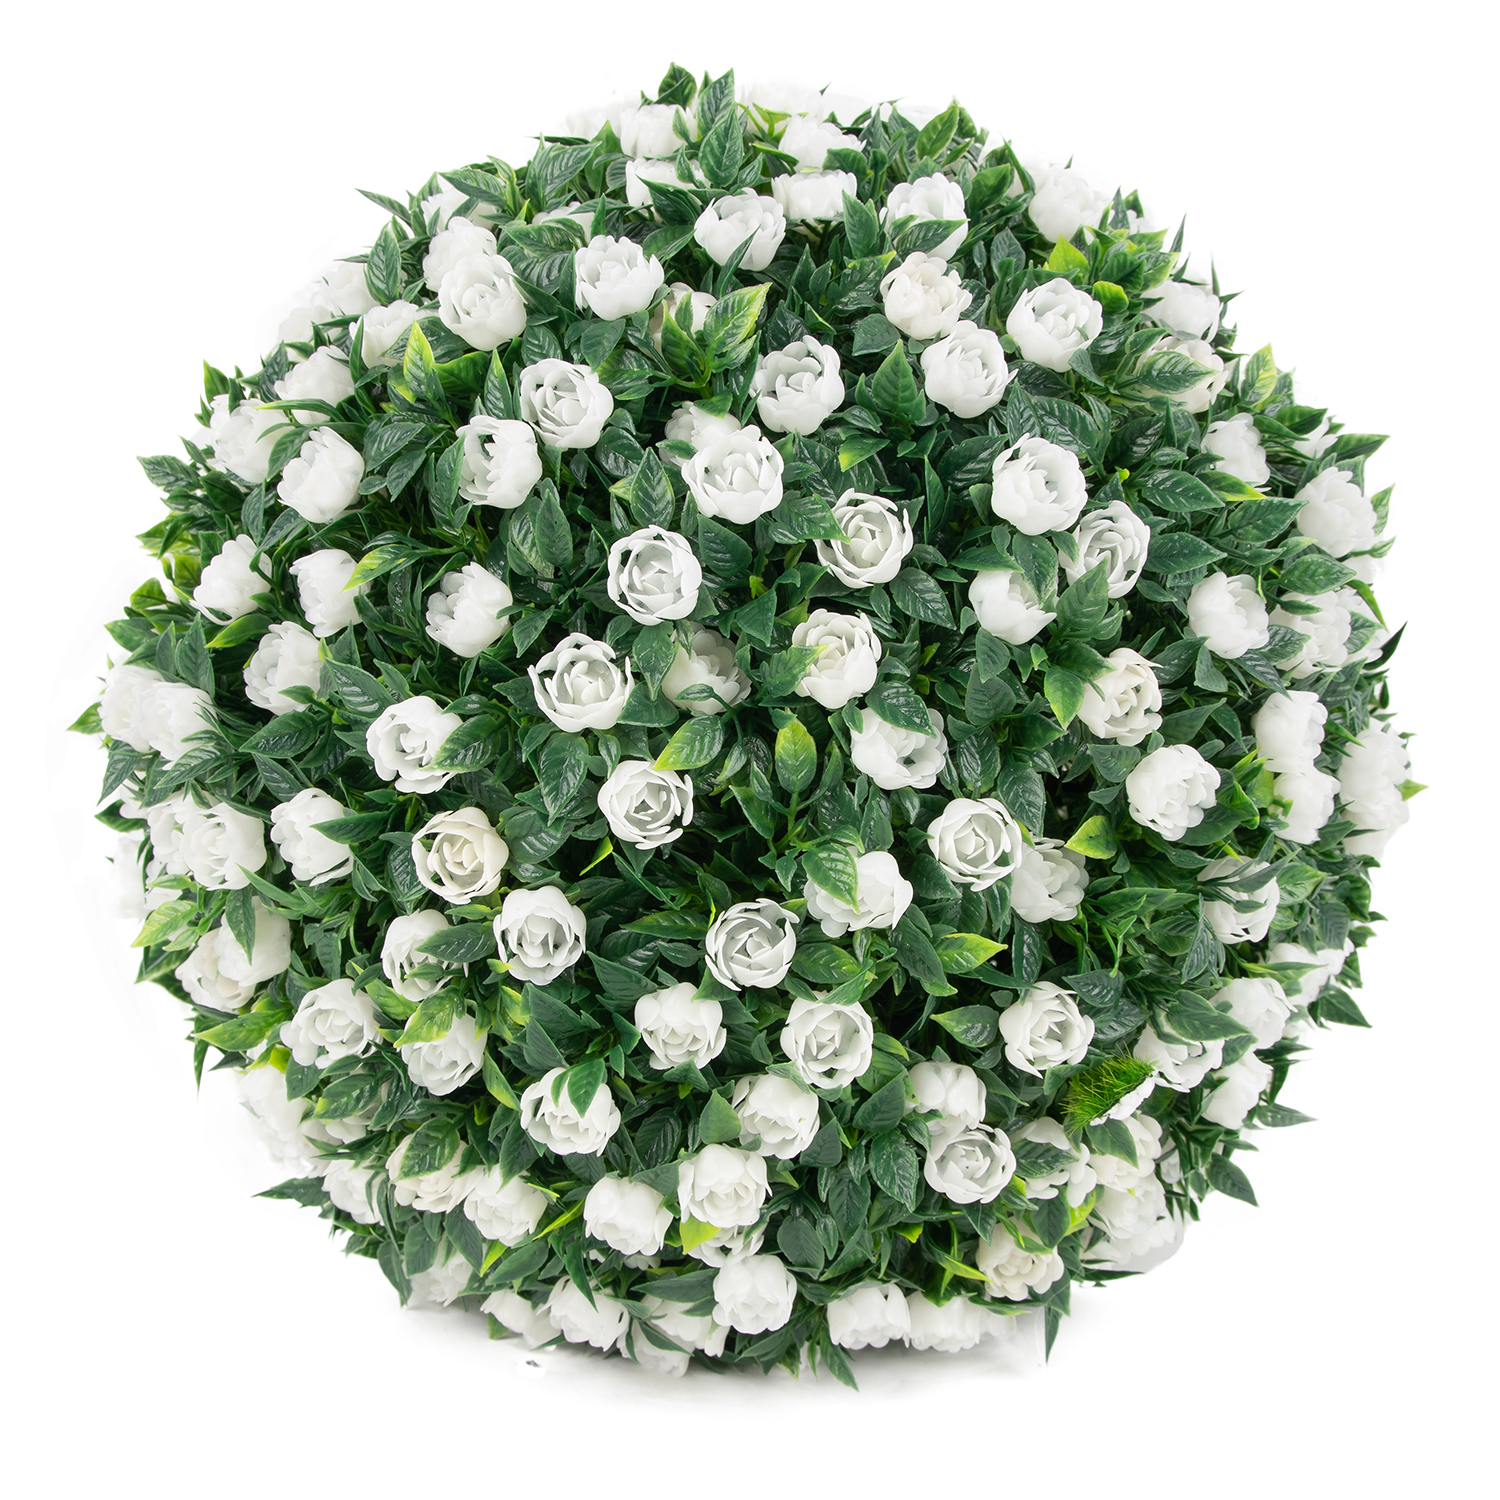 Hanging Artificial Boxwood Ball White Rose Topiary Flower Grass Ball For Home Weeding Decorations Buy Topiary Flower Grass Ball Artificial Boxwood Ball Home Weeding Decorations Product On Alibaba Com